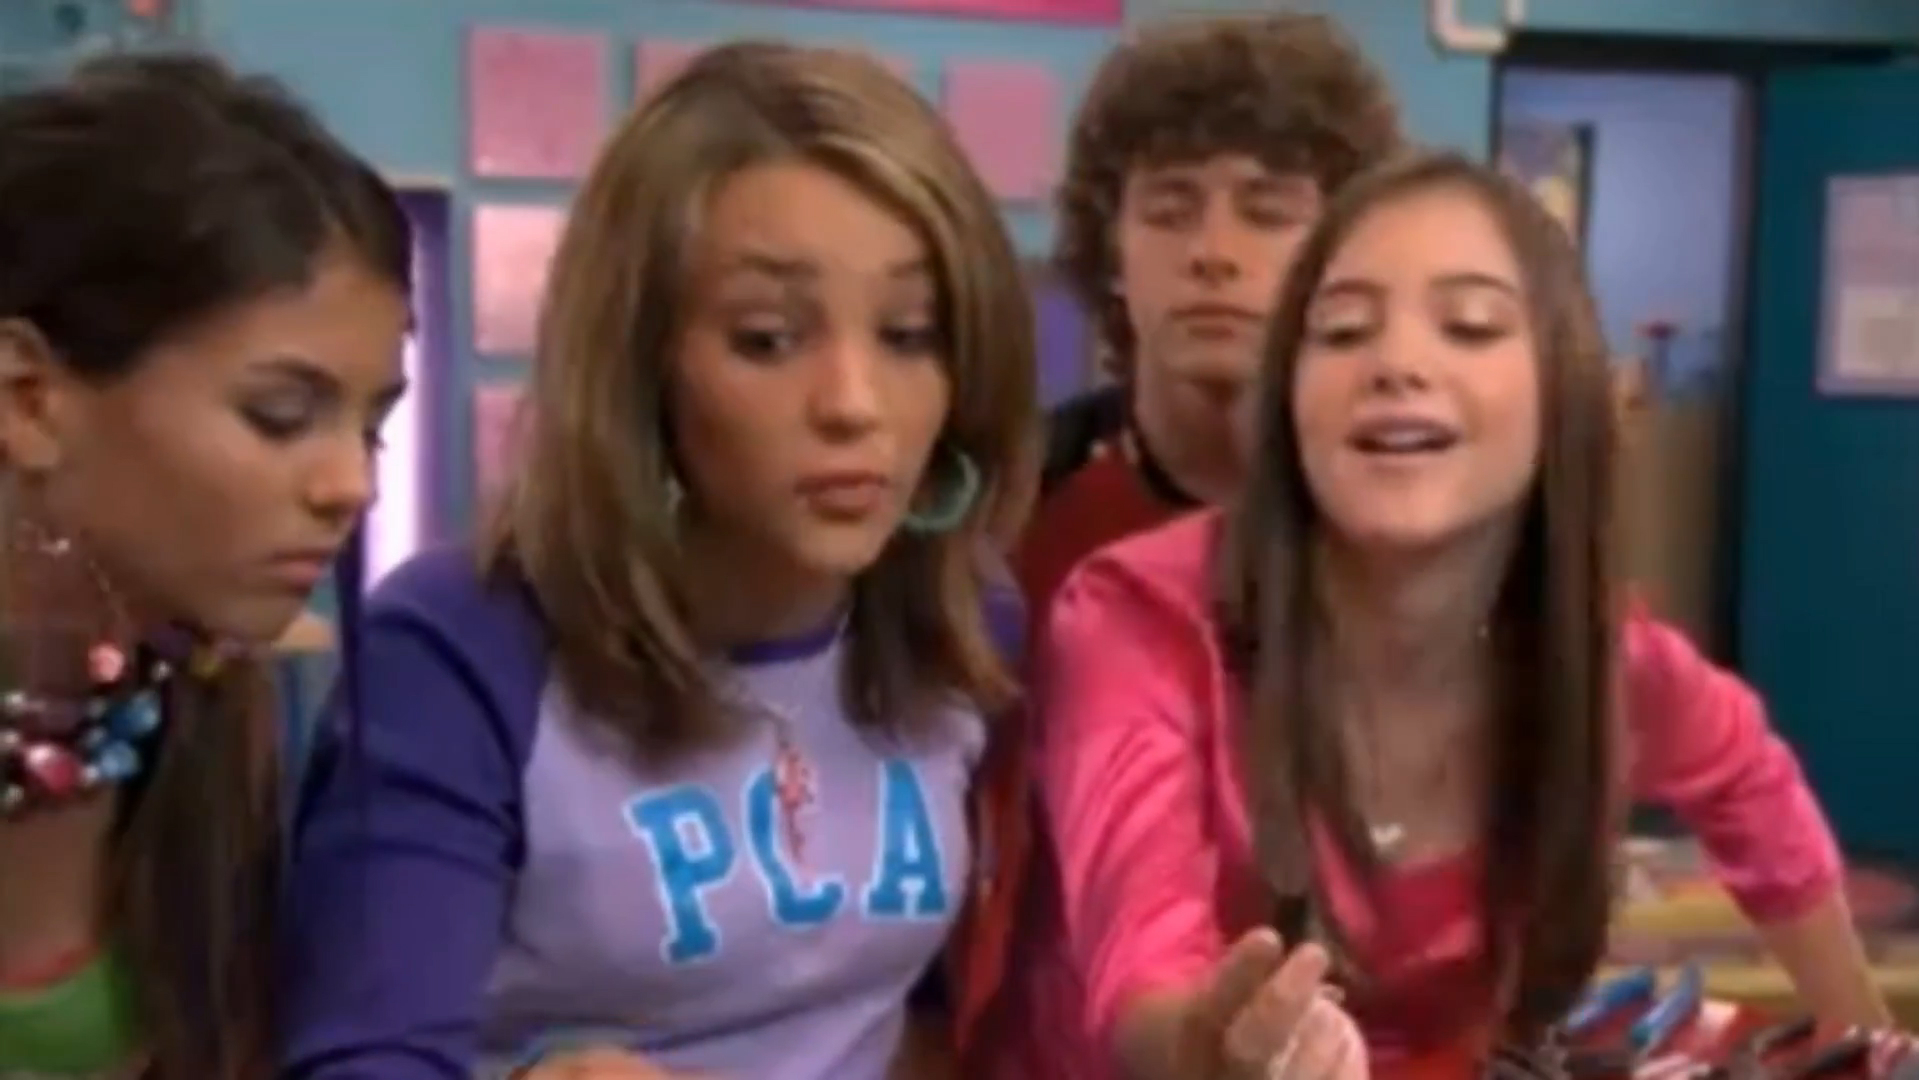 'Zoey 101' Cast: Where Are They Now?